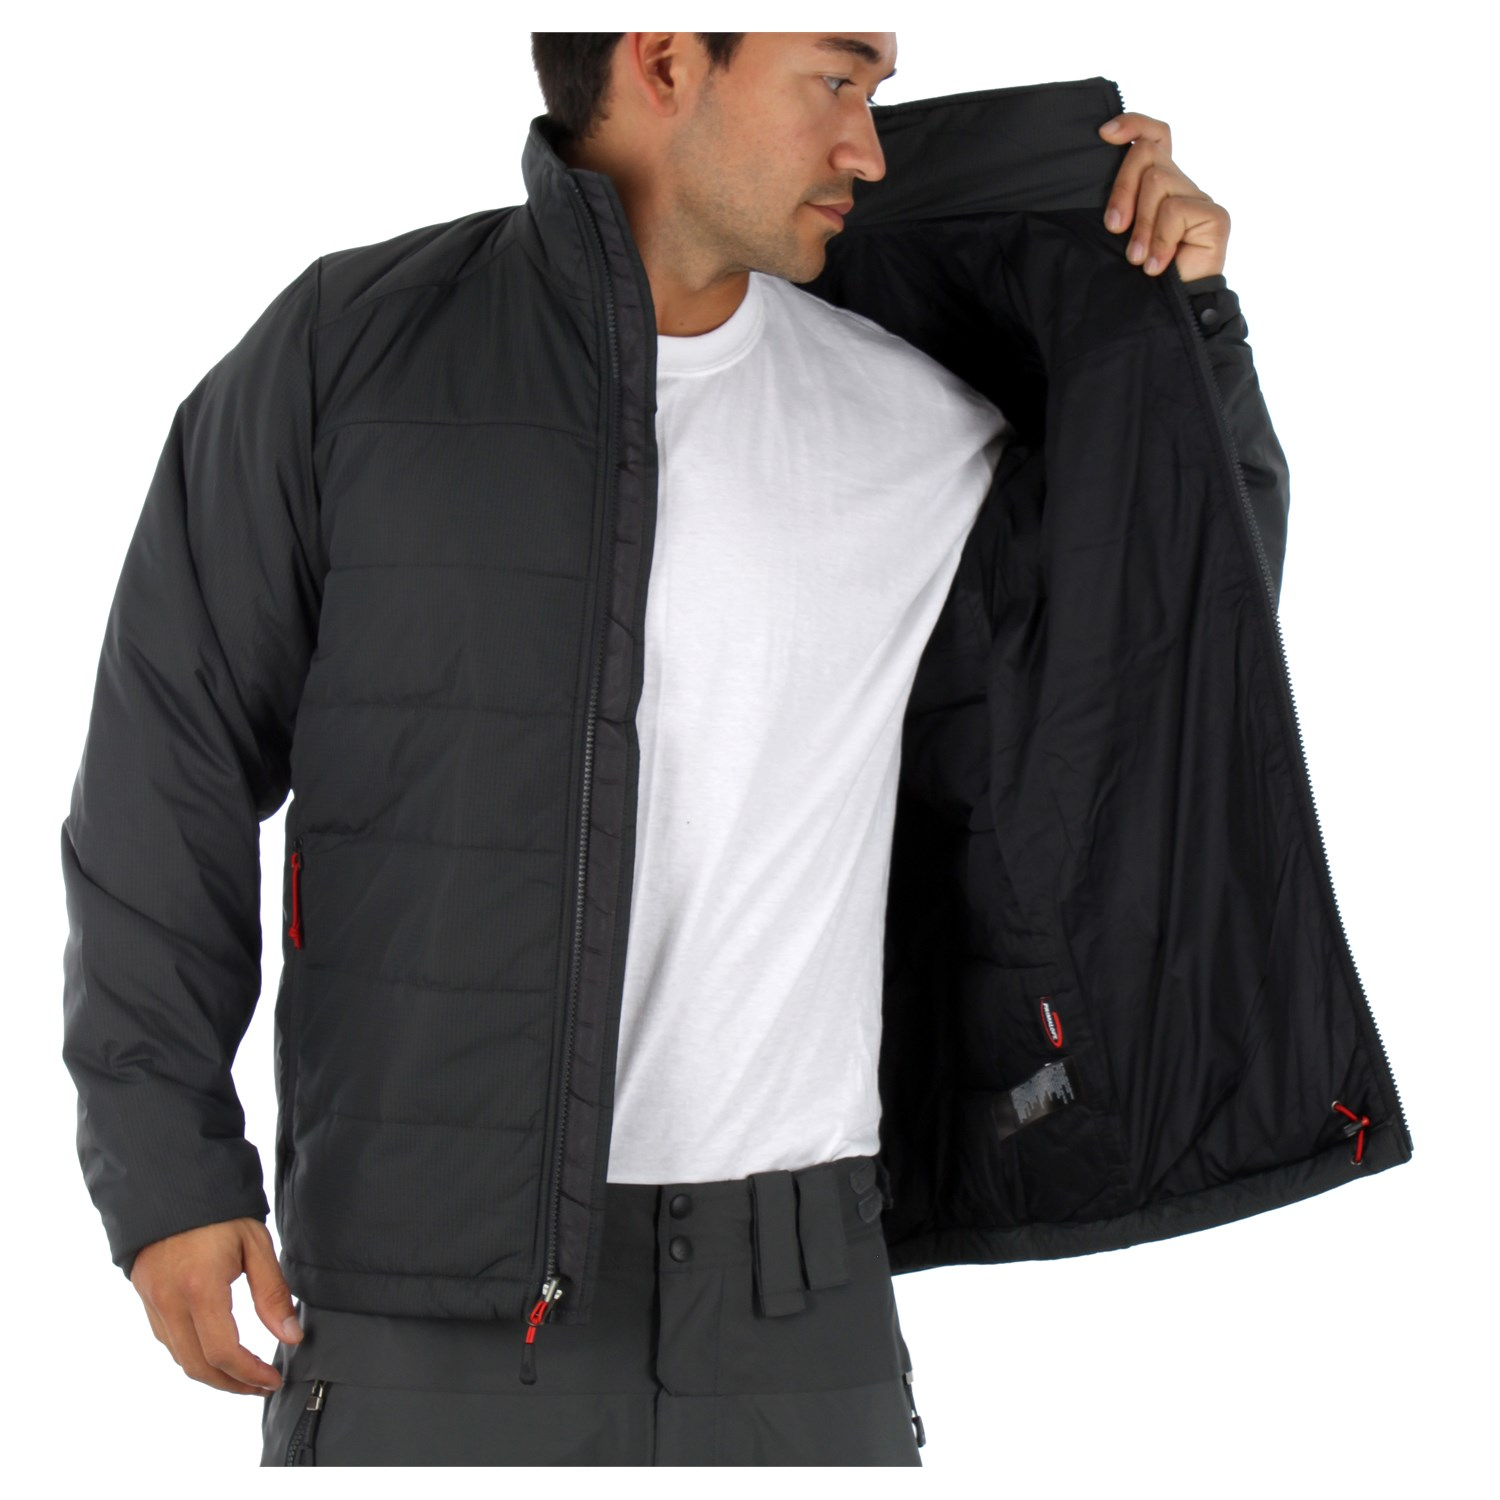 c81605c16 The North Face Redpoint Jacket | evo